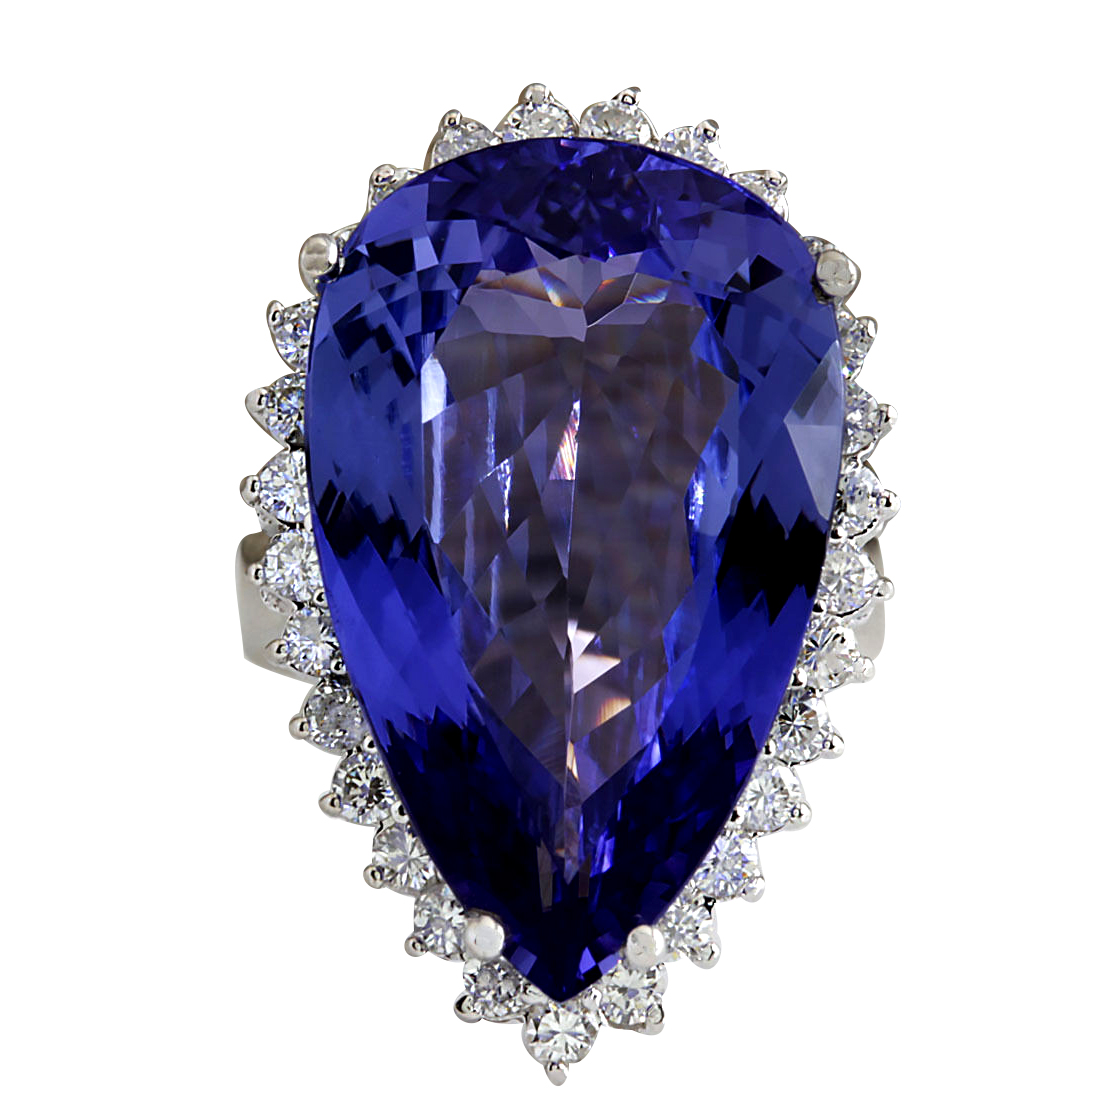 23.32CTW Natural Tanzanite Diamond Ring 14K Solid White Gold by